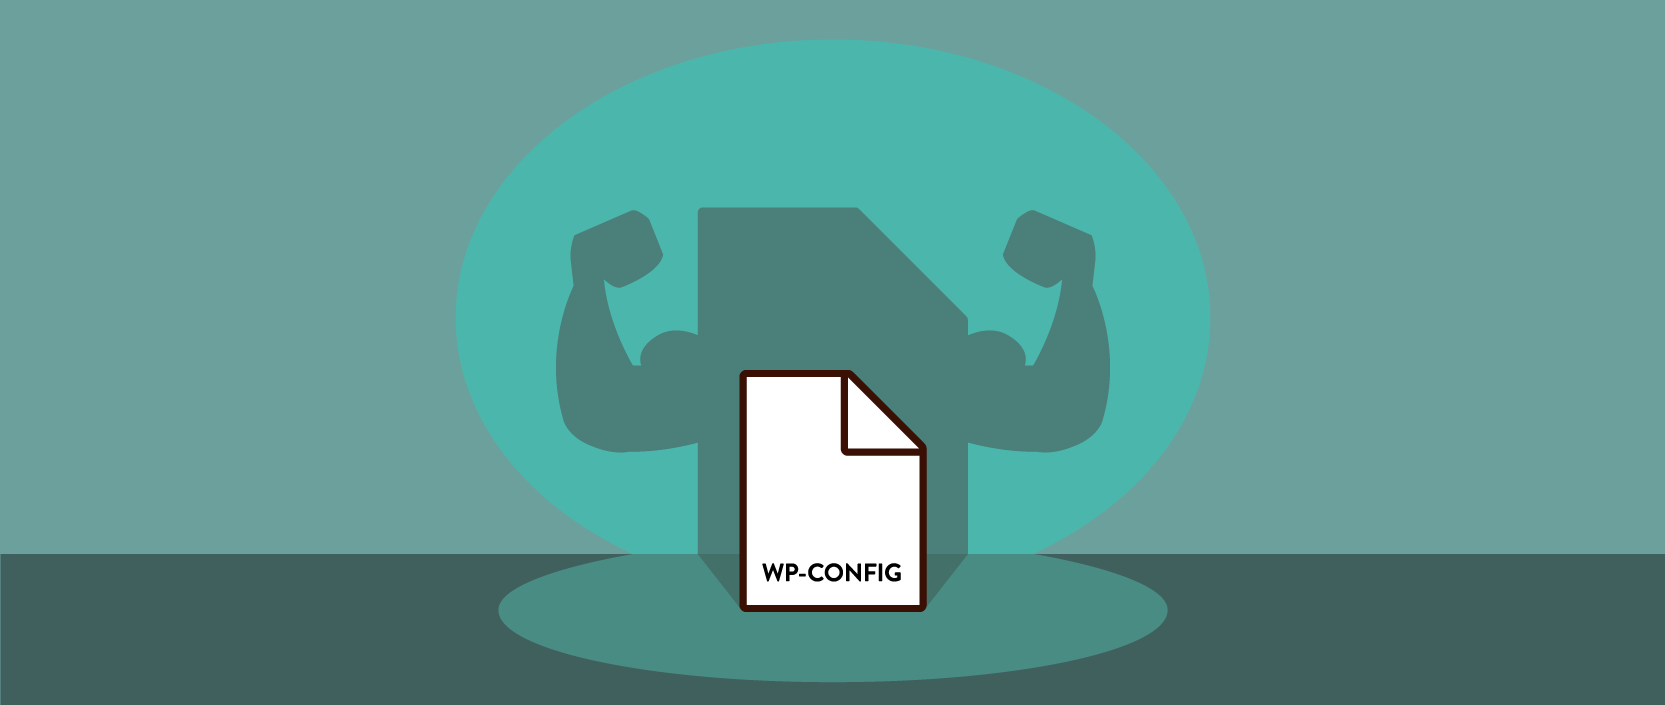 Hacking WP-config - The Media Temple Blog